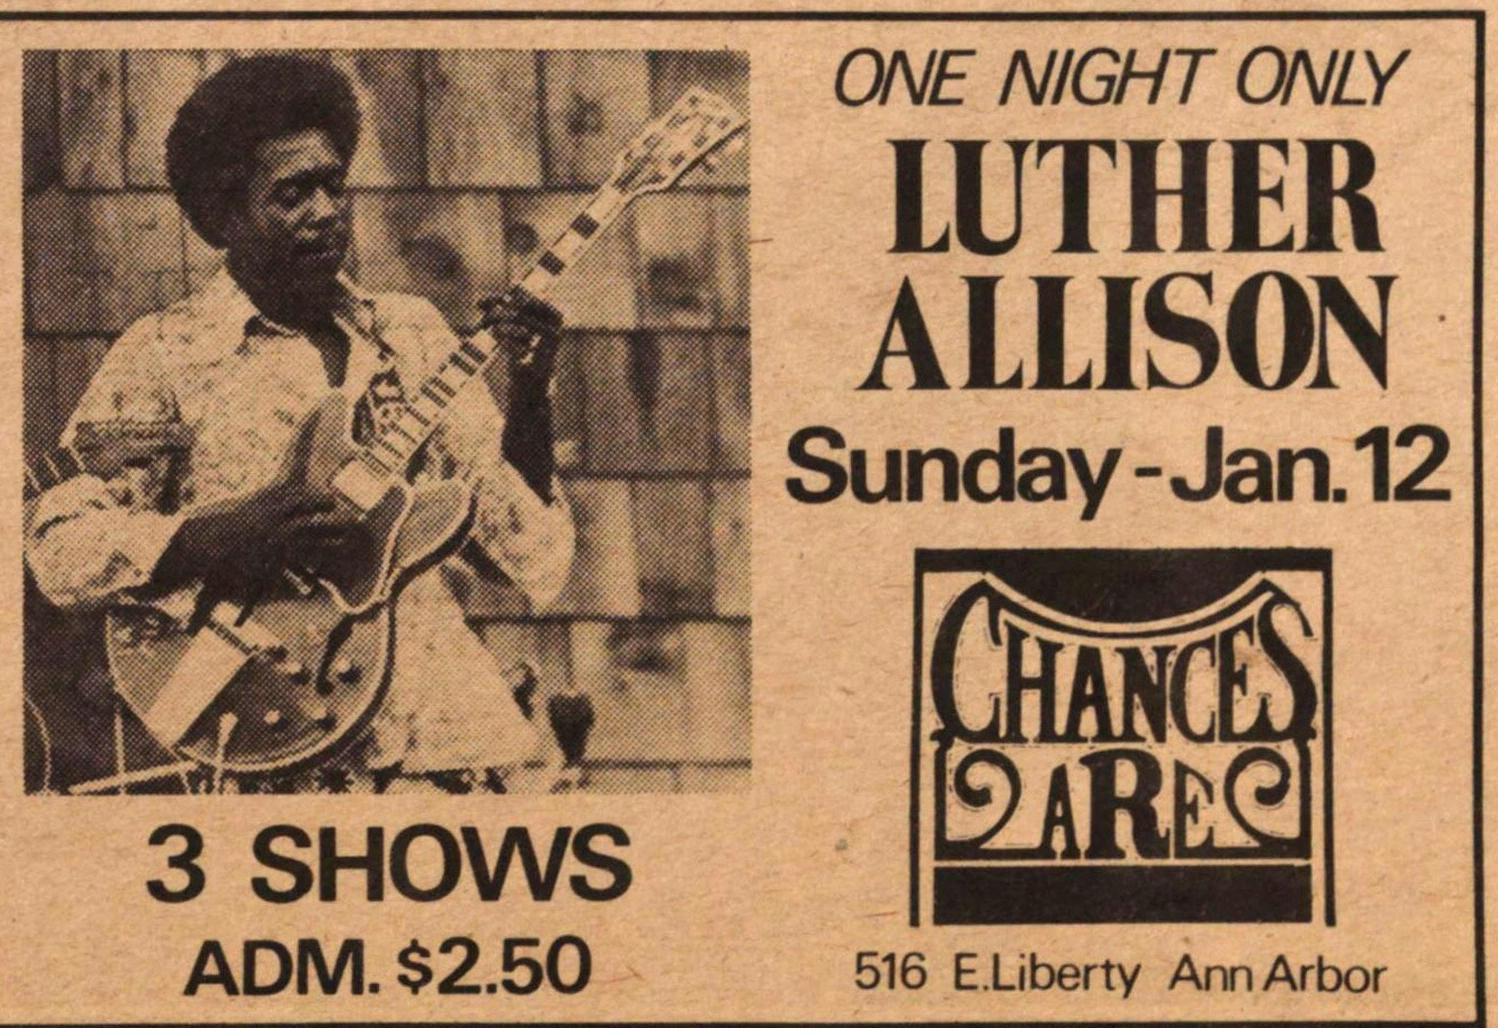 Luther Allison image